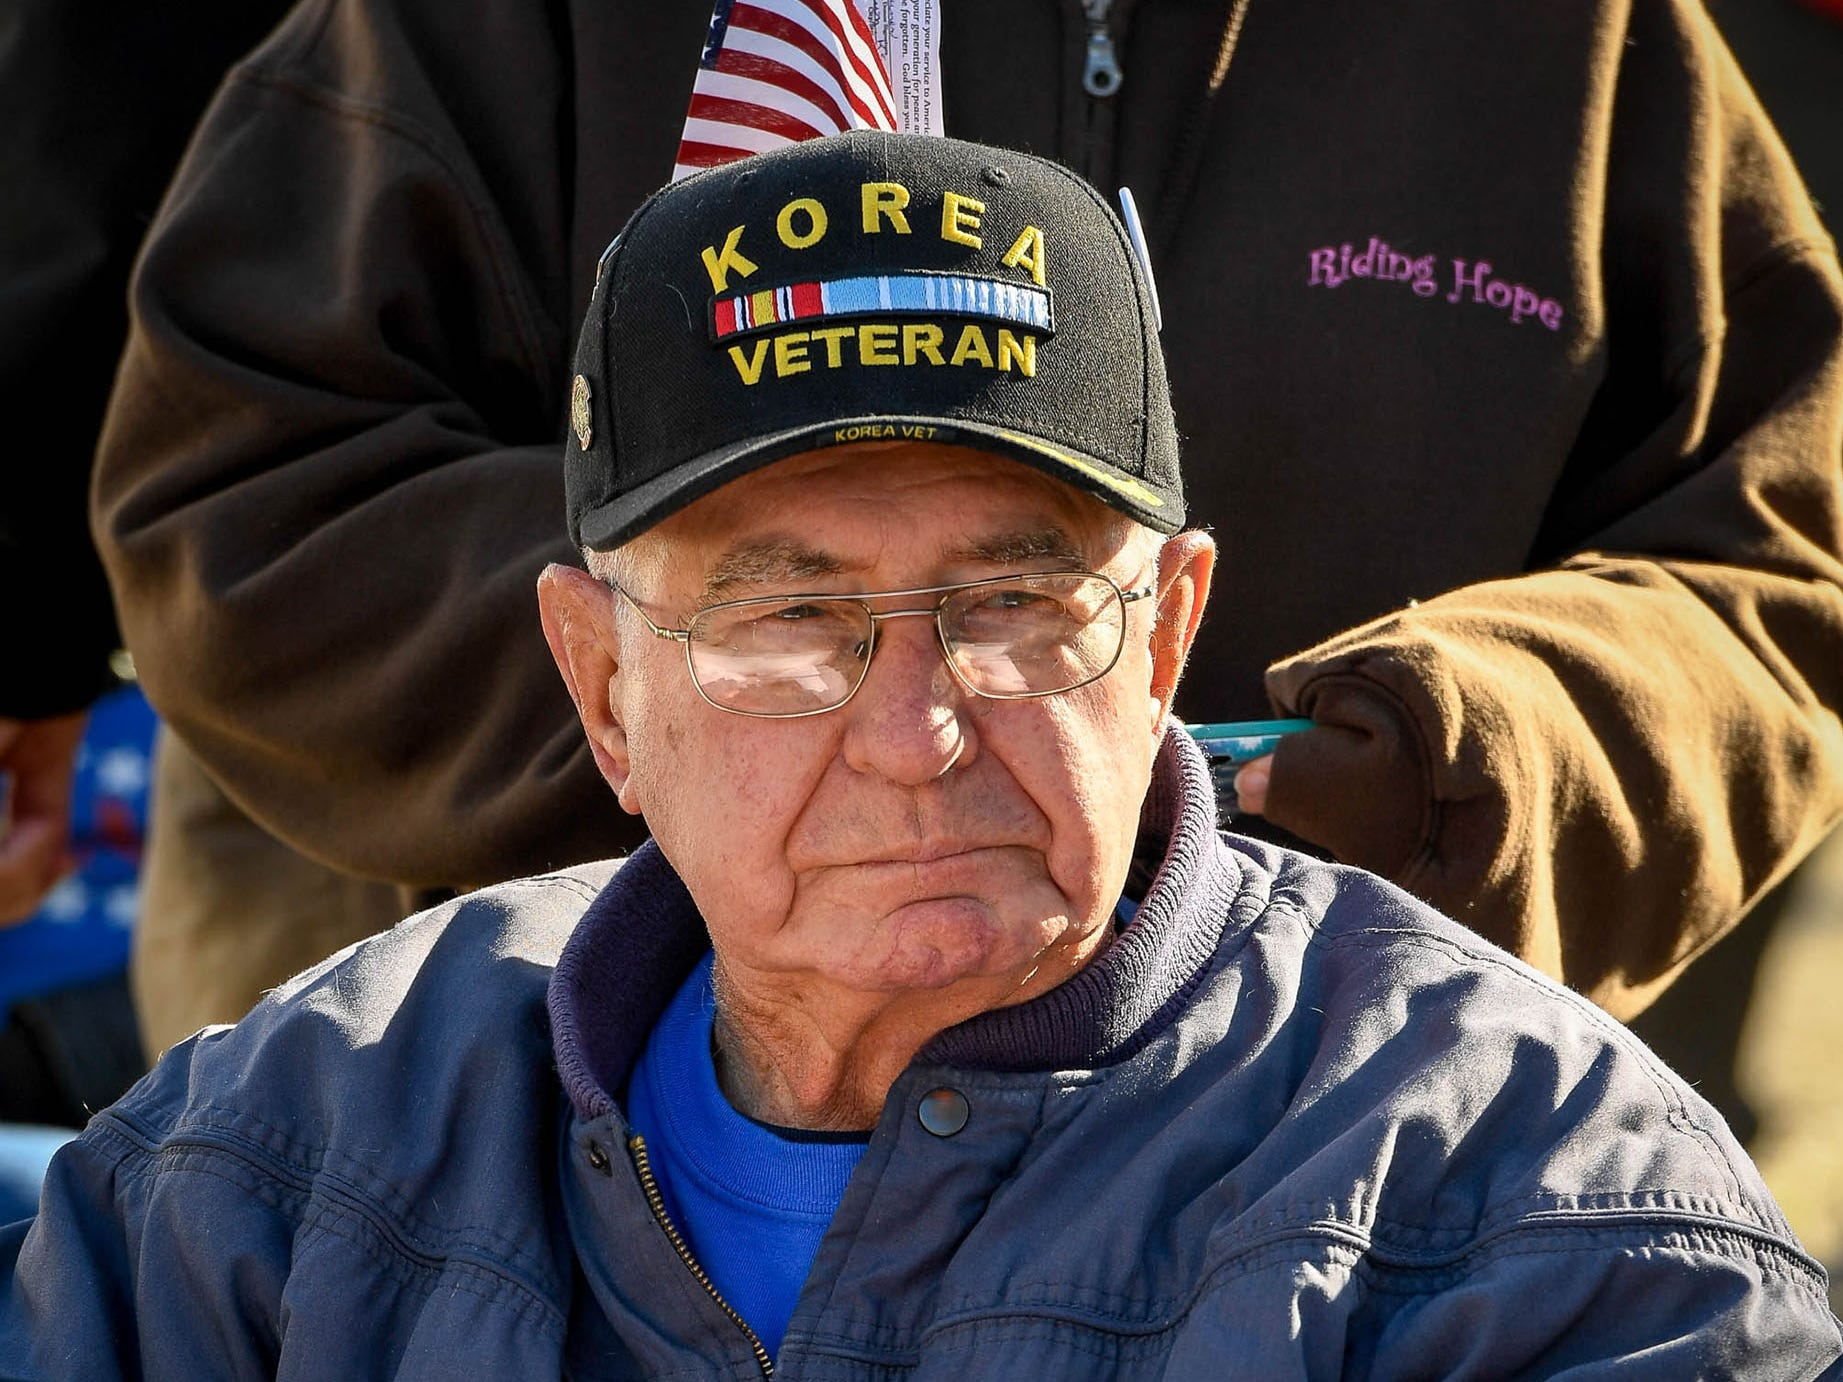 Marvin Lawrence Zwahlen, a Korean War veteran, waits for the start of the annual Four Freedoms Veterans Parade on Evansville's West Franklin Street, Saturday, Nov. 10, 2018.